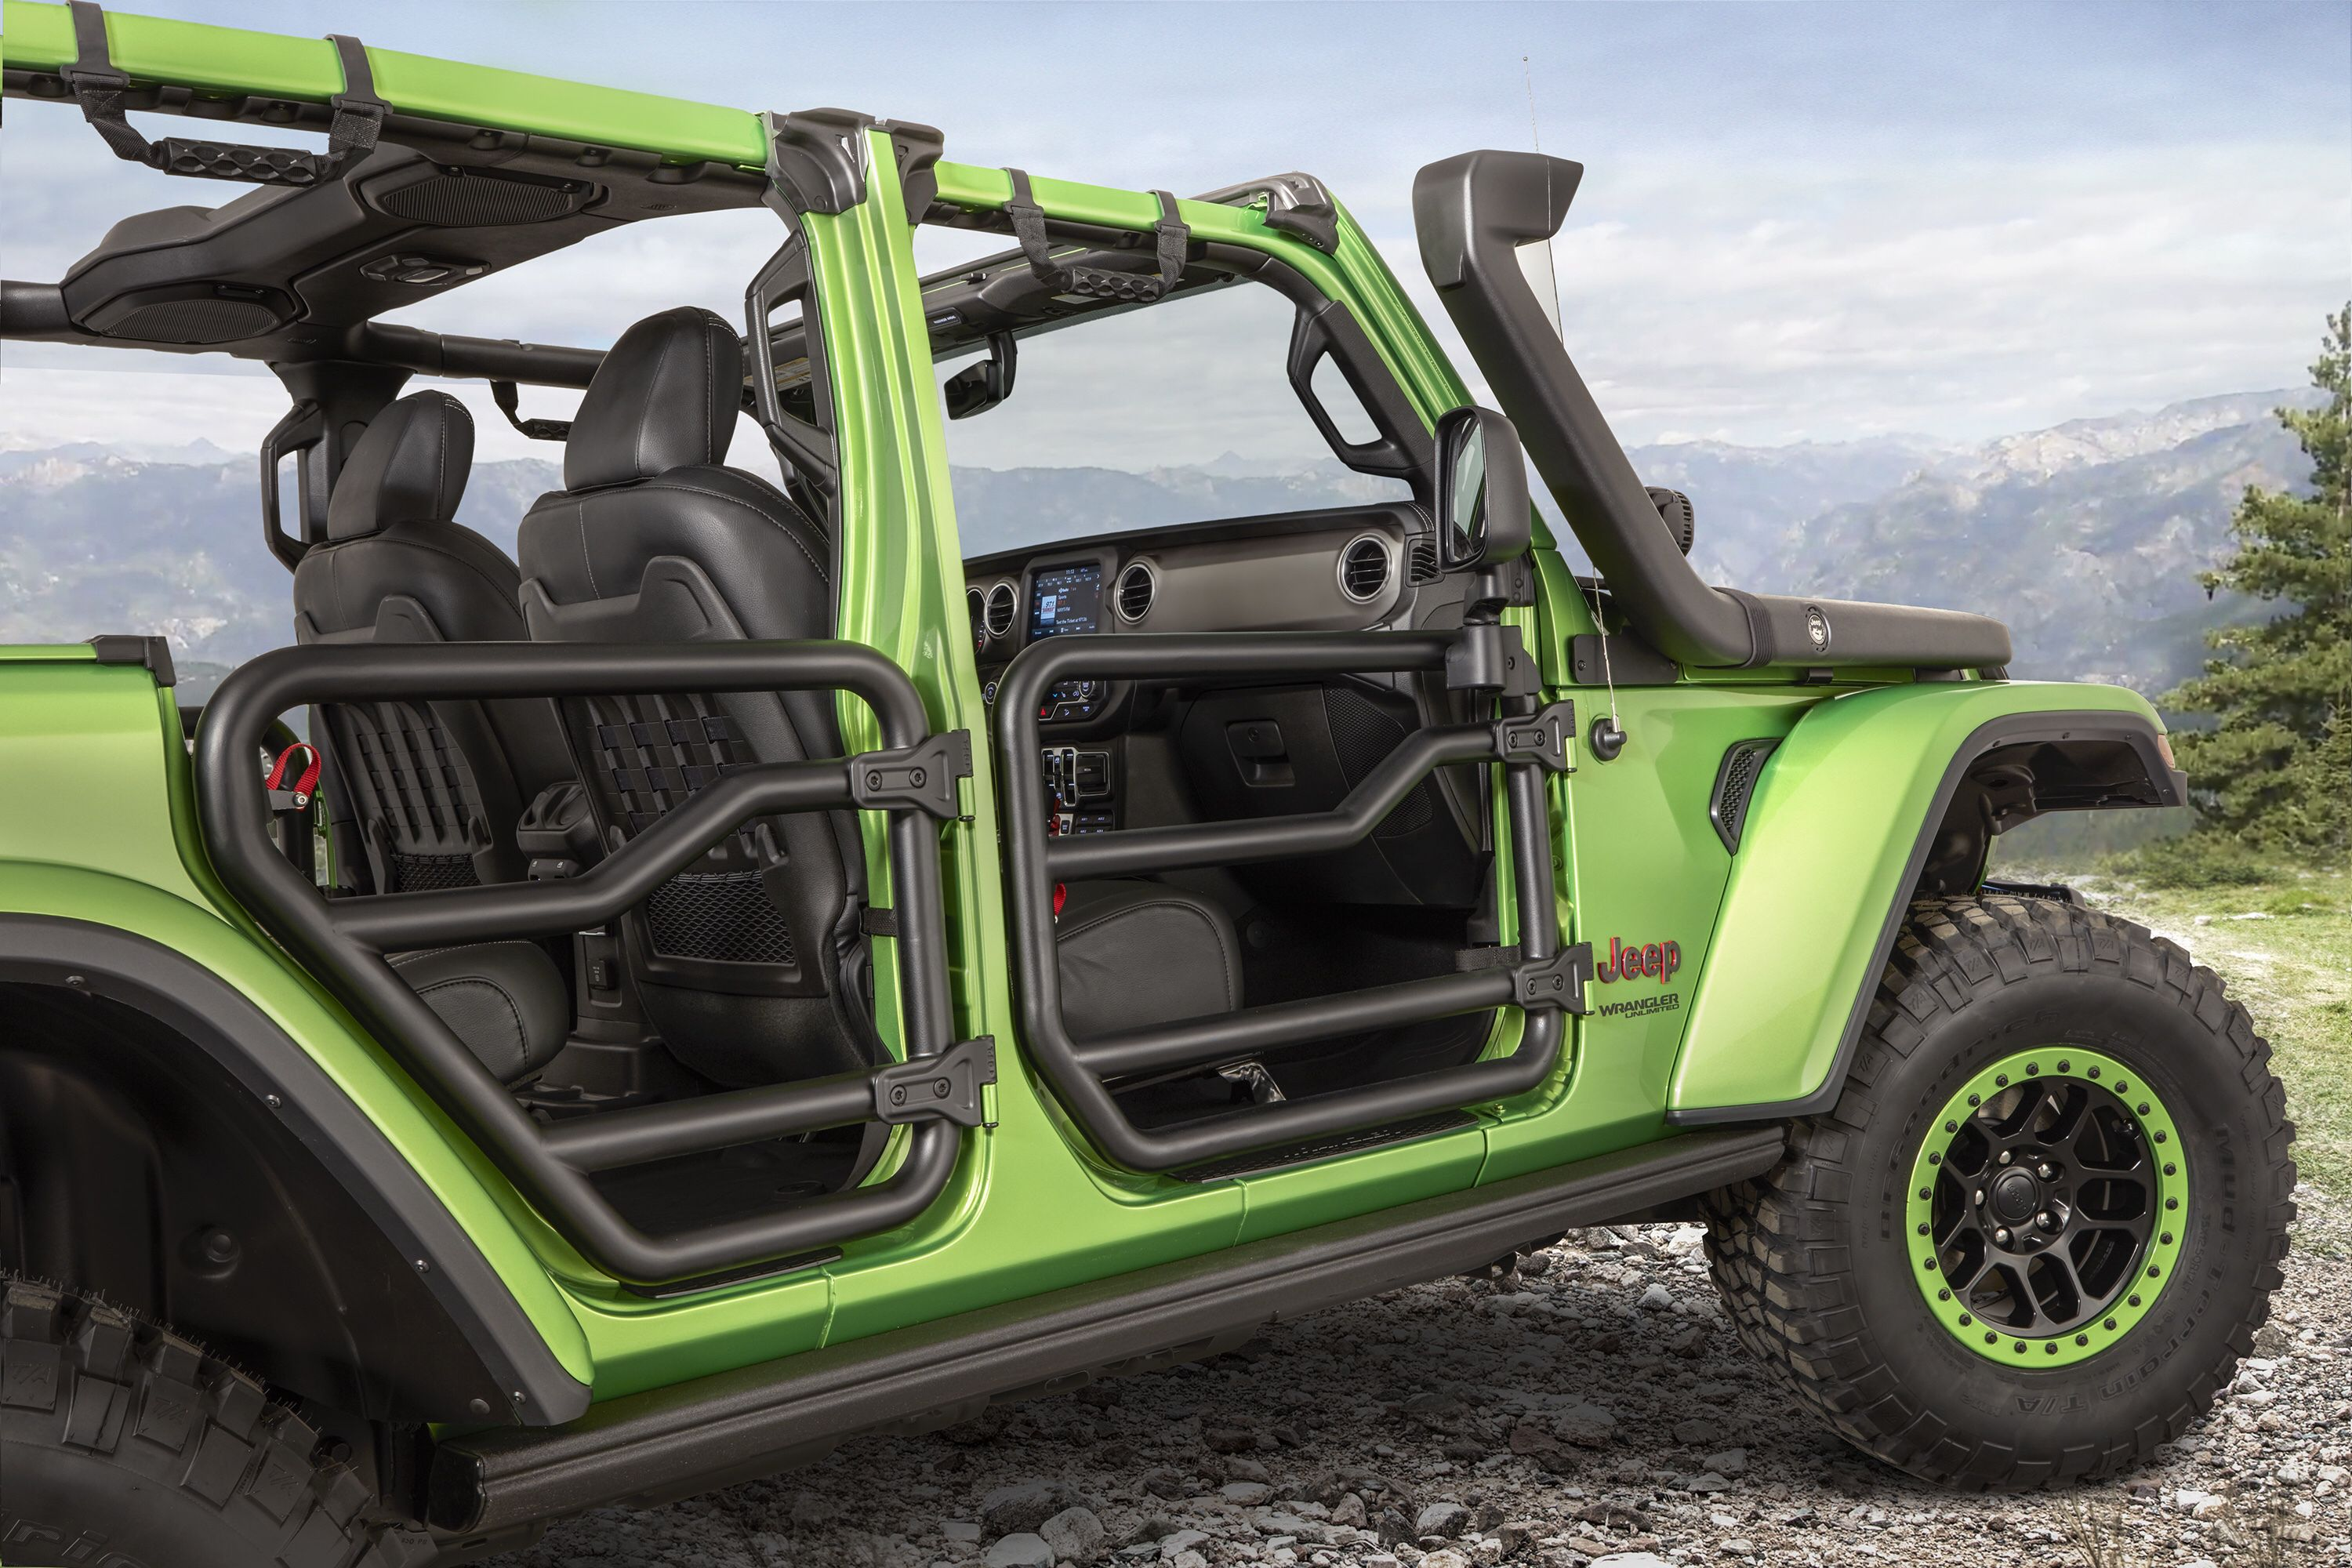 Is This Mojito Kevinspocket Custom Jeep Jeep Wrangler Jeep Wrangler Rubicon